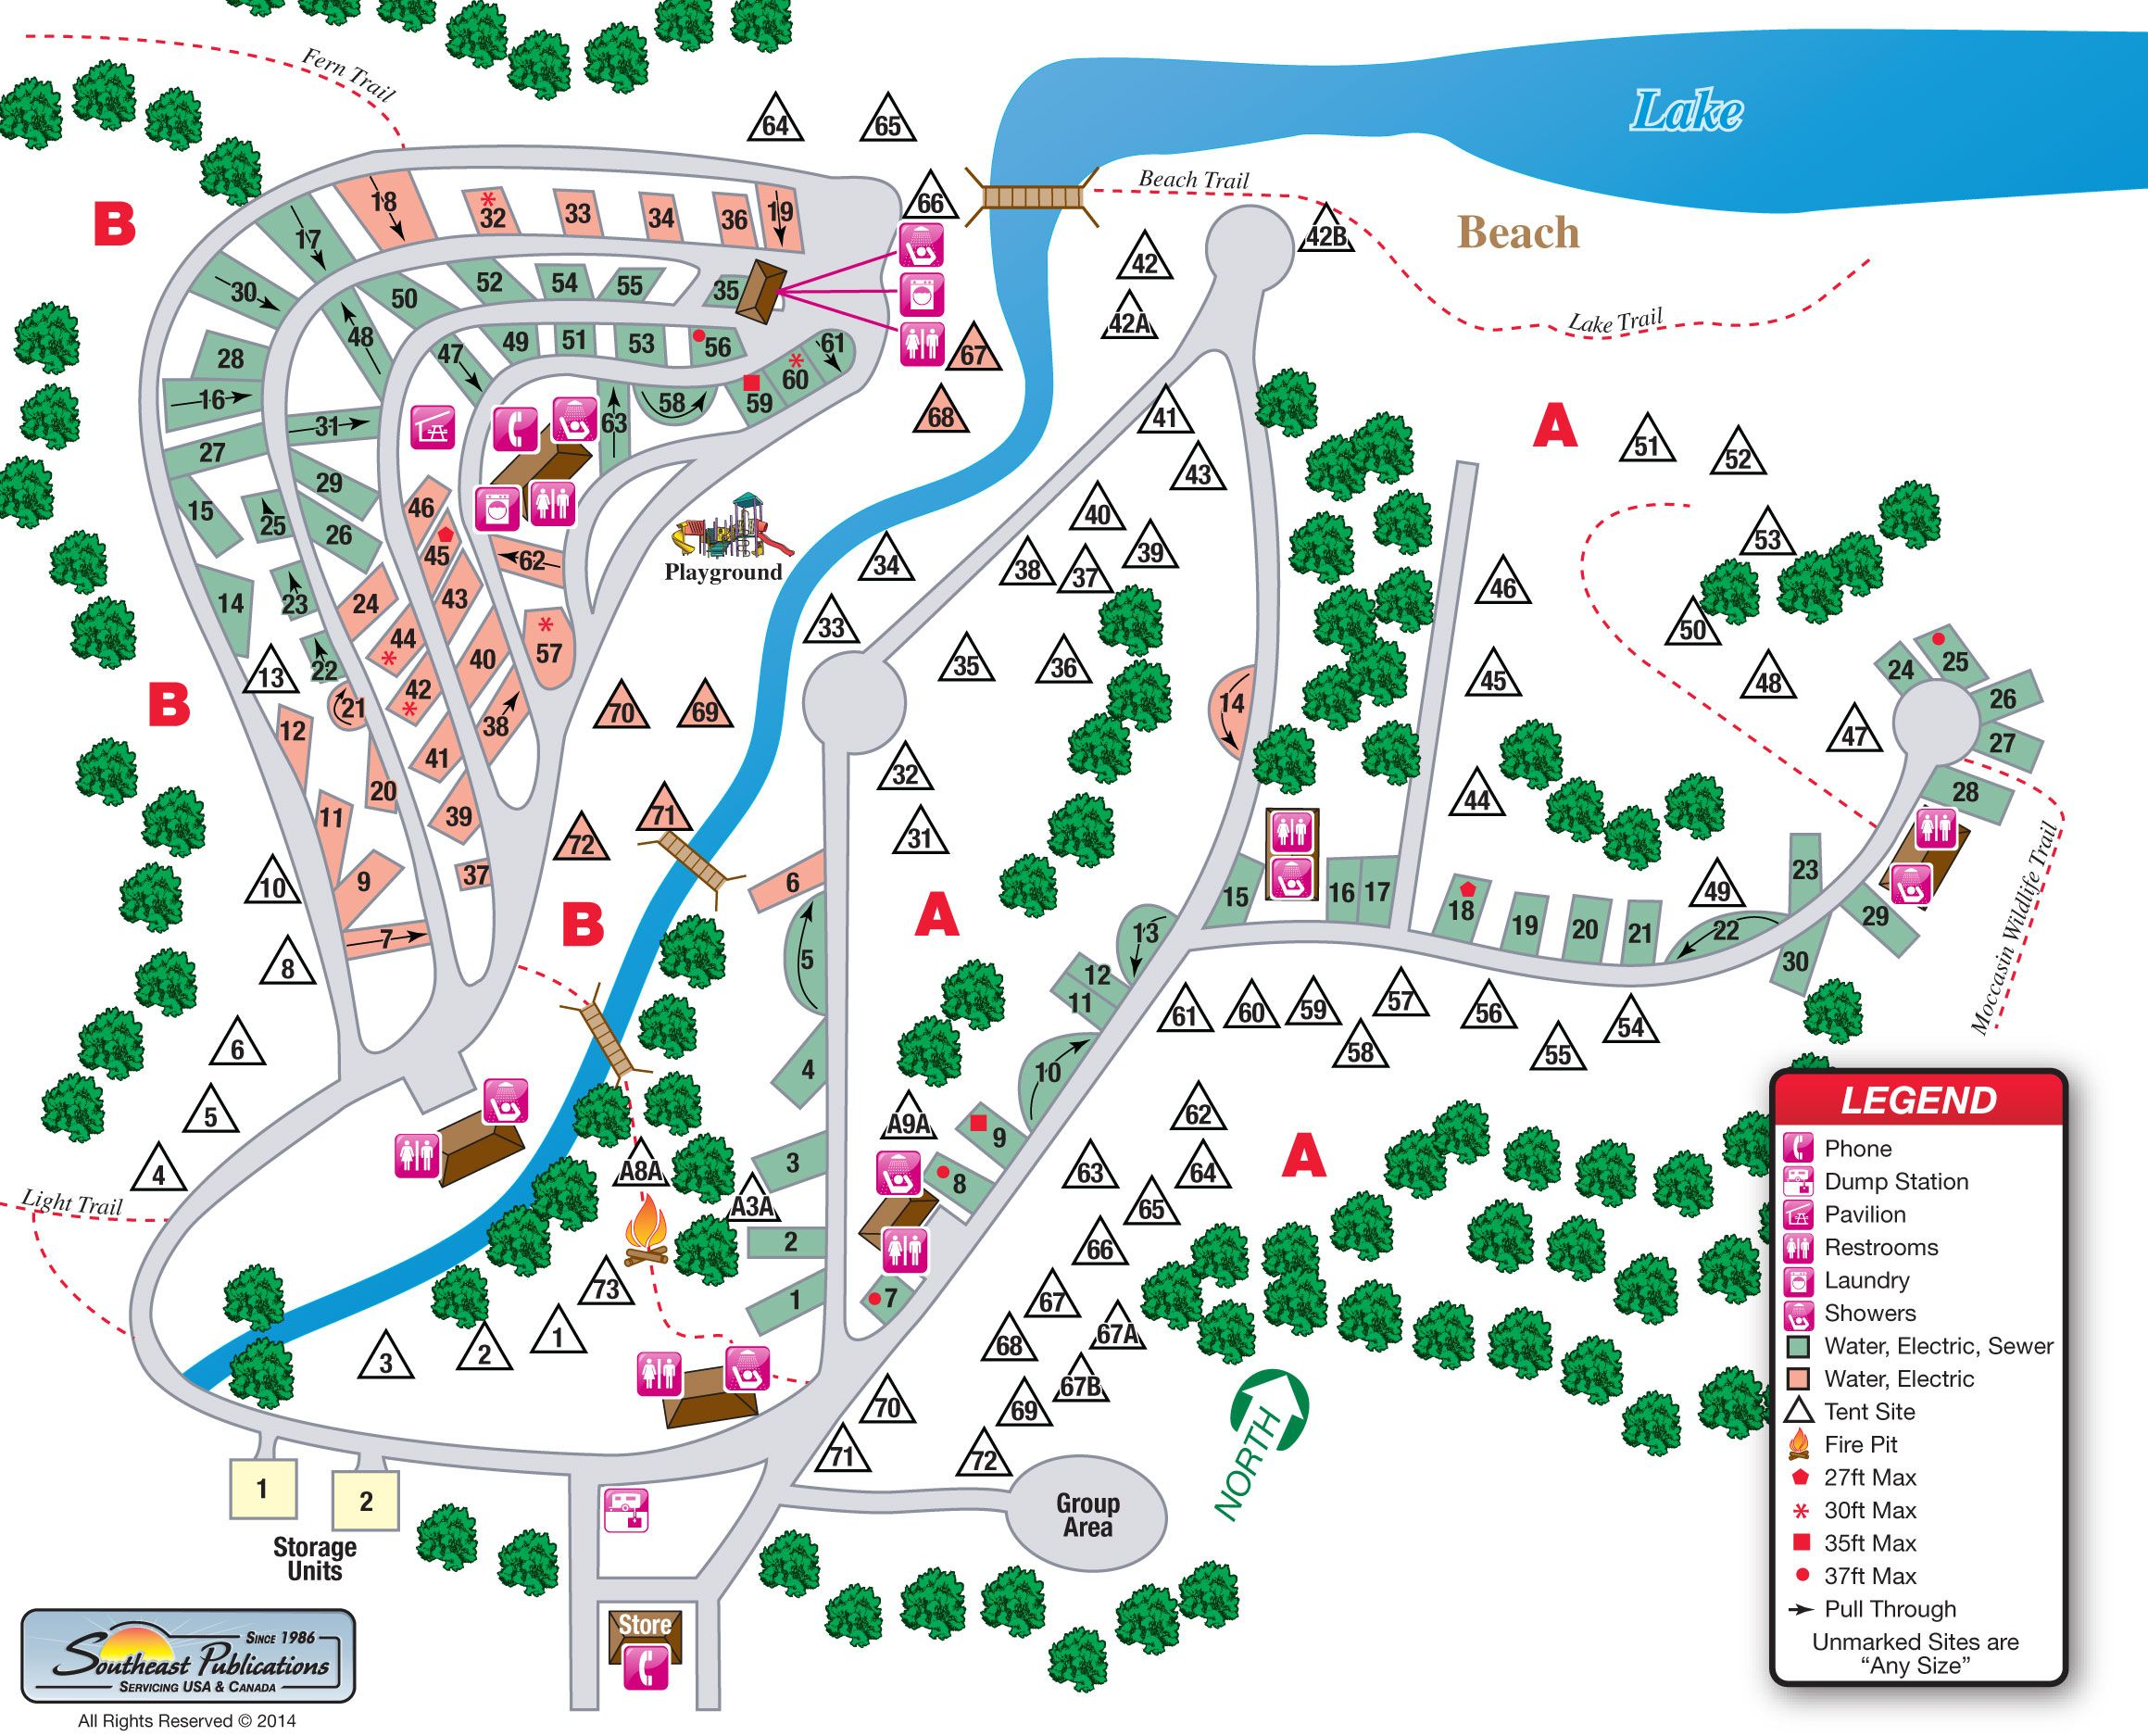 oak mountain state park campground map - Google Search | Motor homes ...